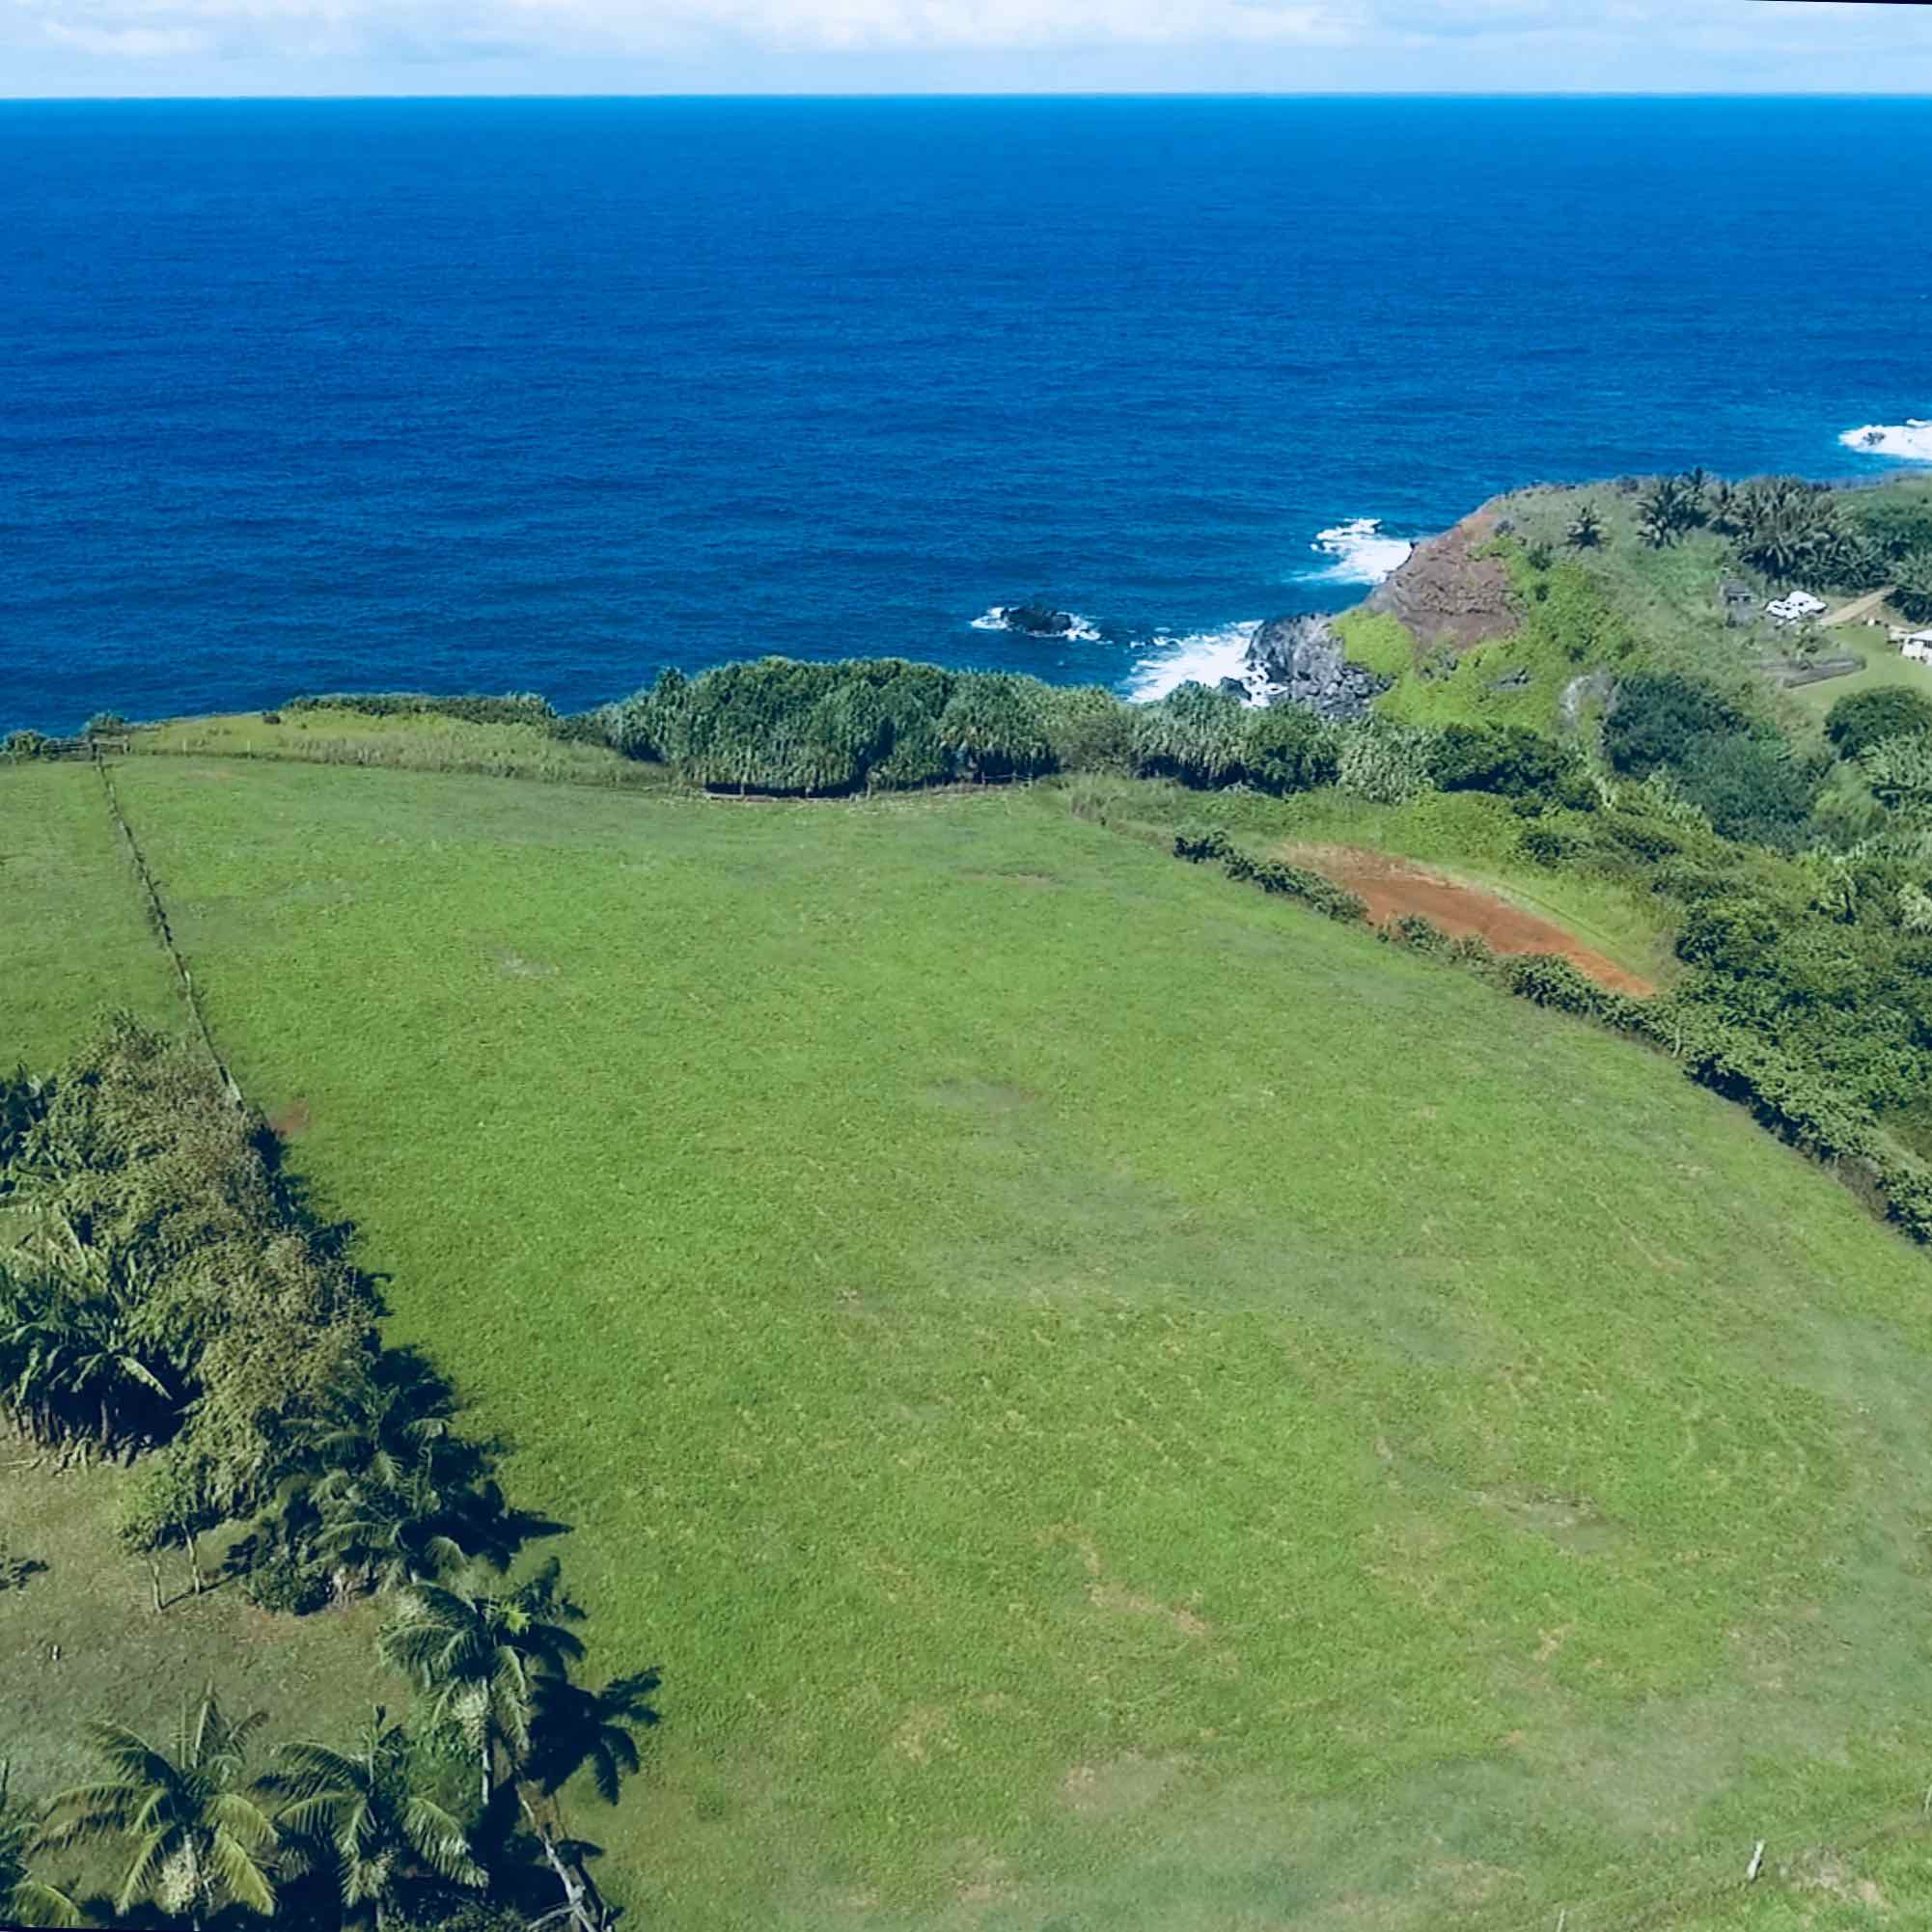 Haiku Maui property for sale - ocean view and oceanfront lots and acres - 460 Hoolawa Road is oceanfront acreage